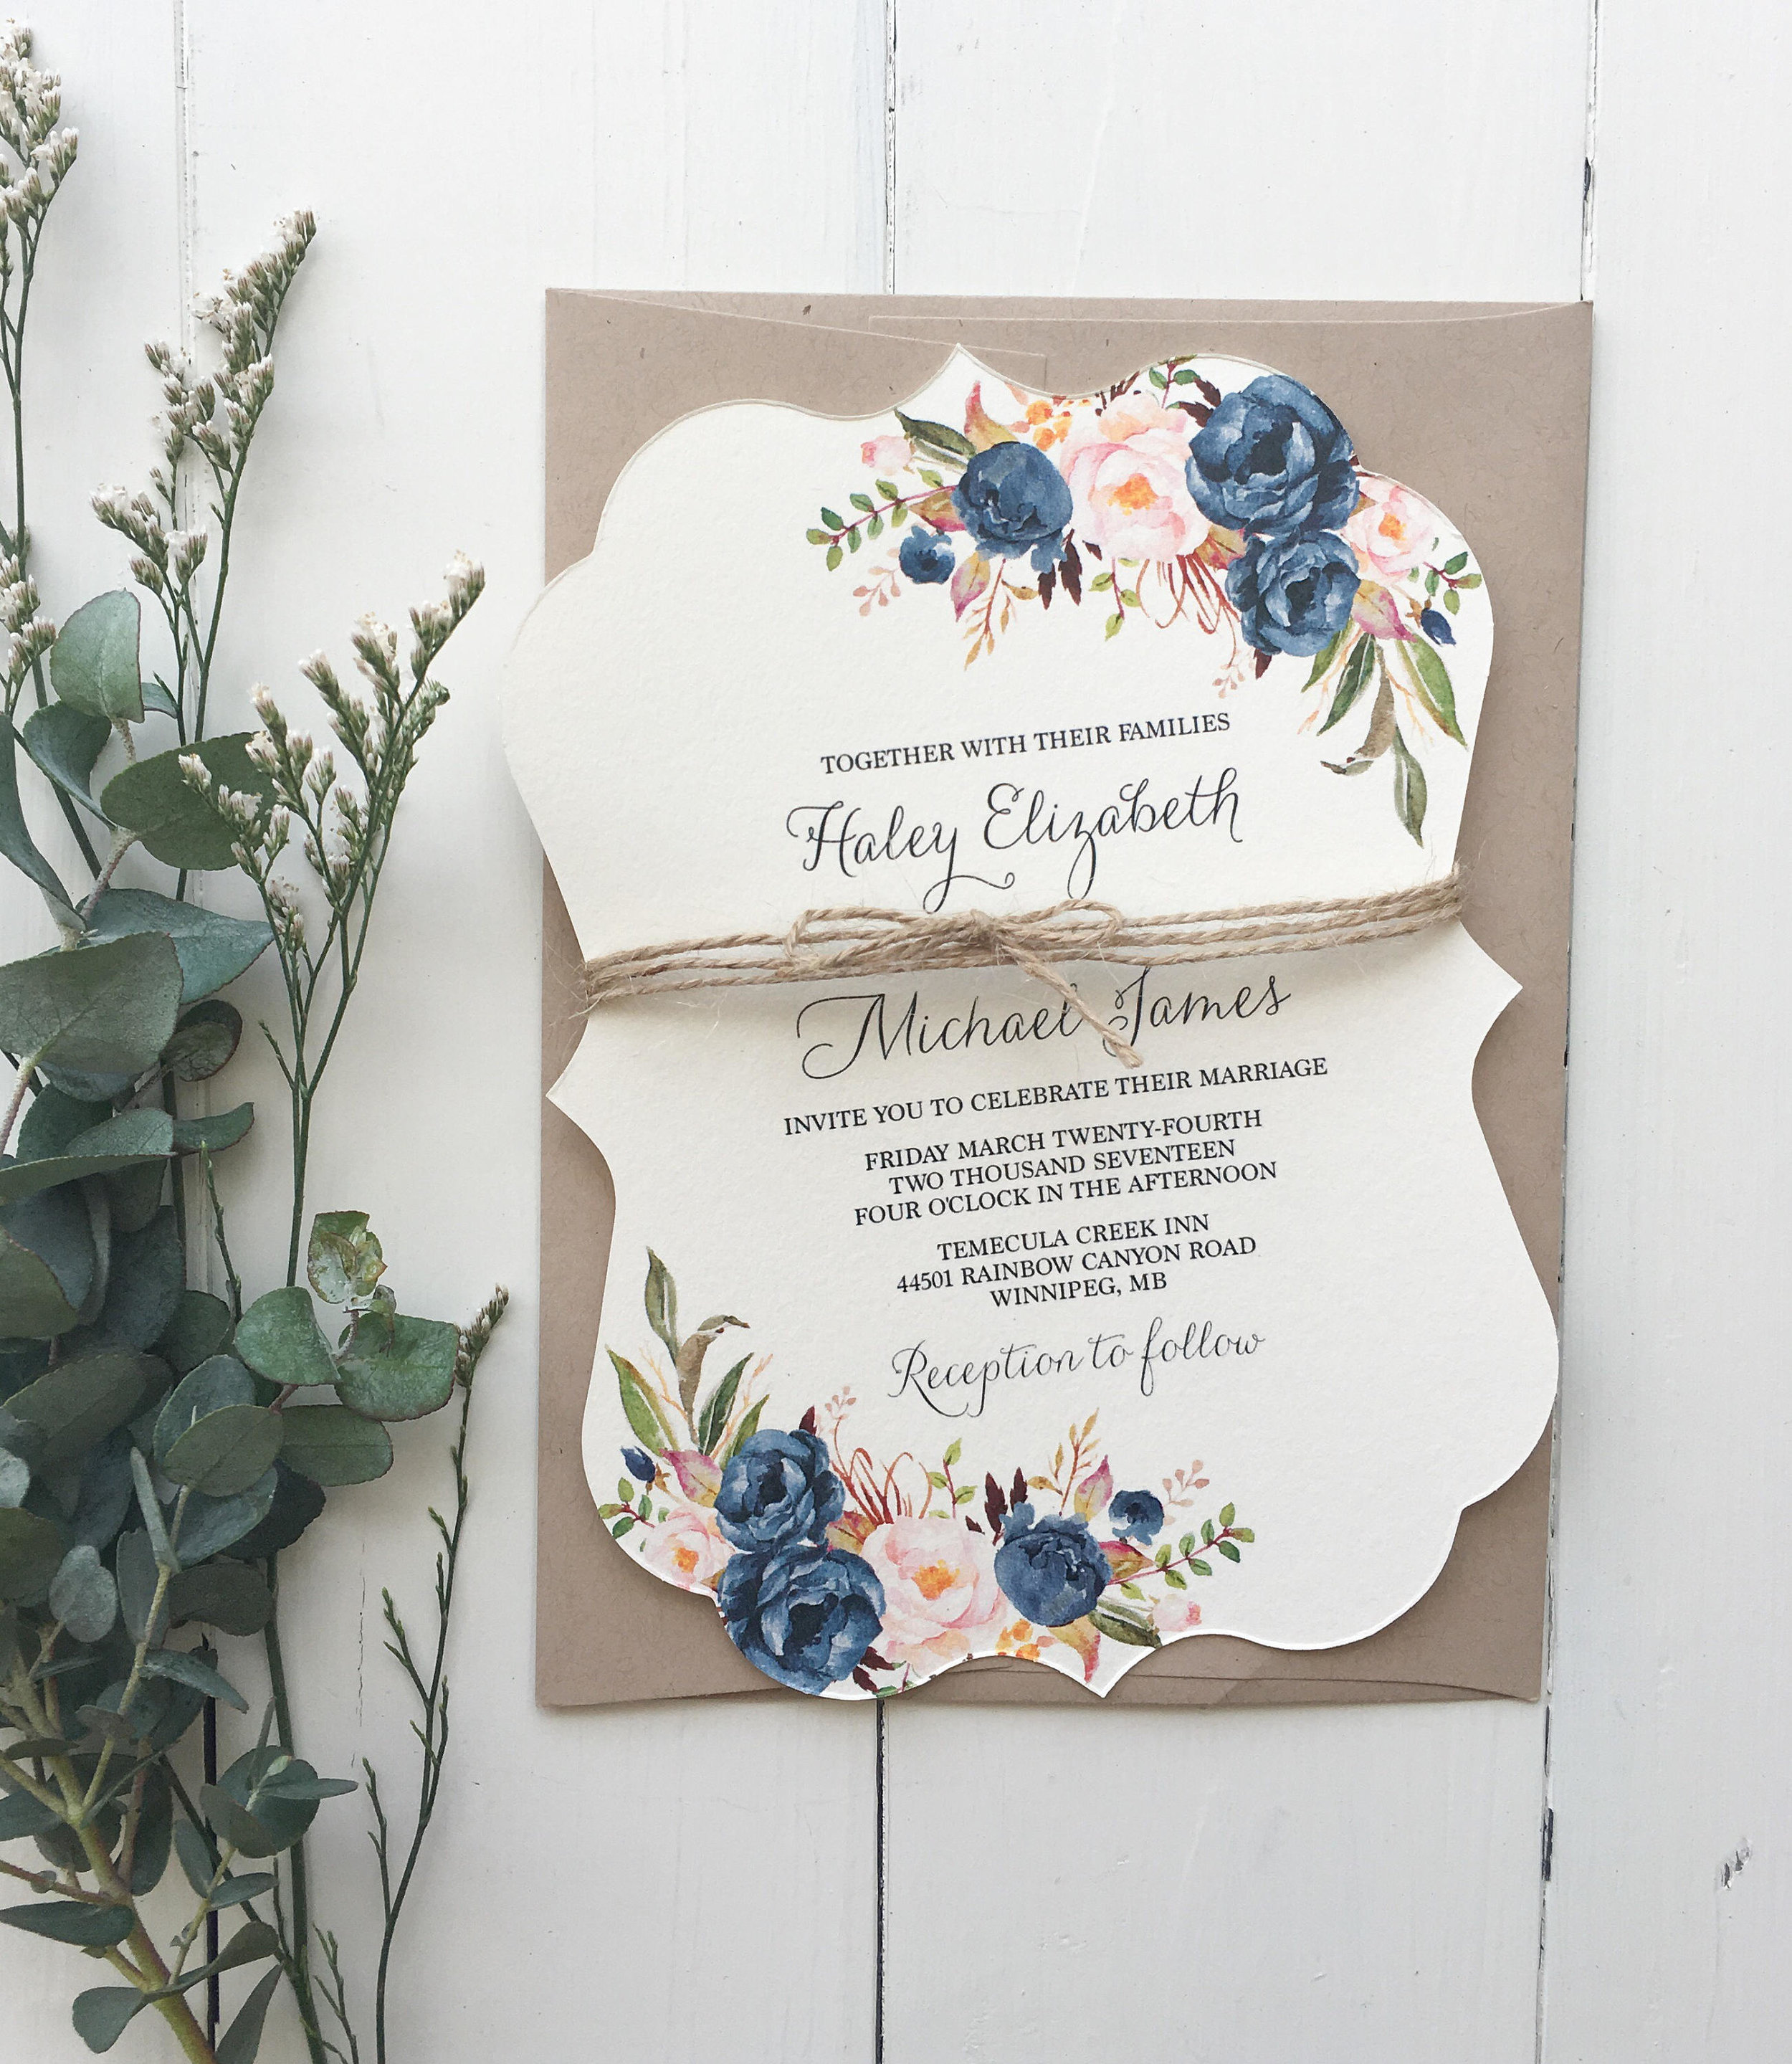 Boho Chic Wedding Invitation, Dusty Blue Wedding Invitation, Blush Pink and blue Invitation, Rustic Floral Invite, Bohemian Wedding.jpg